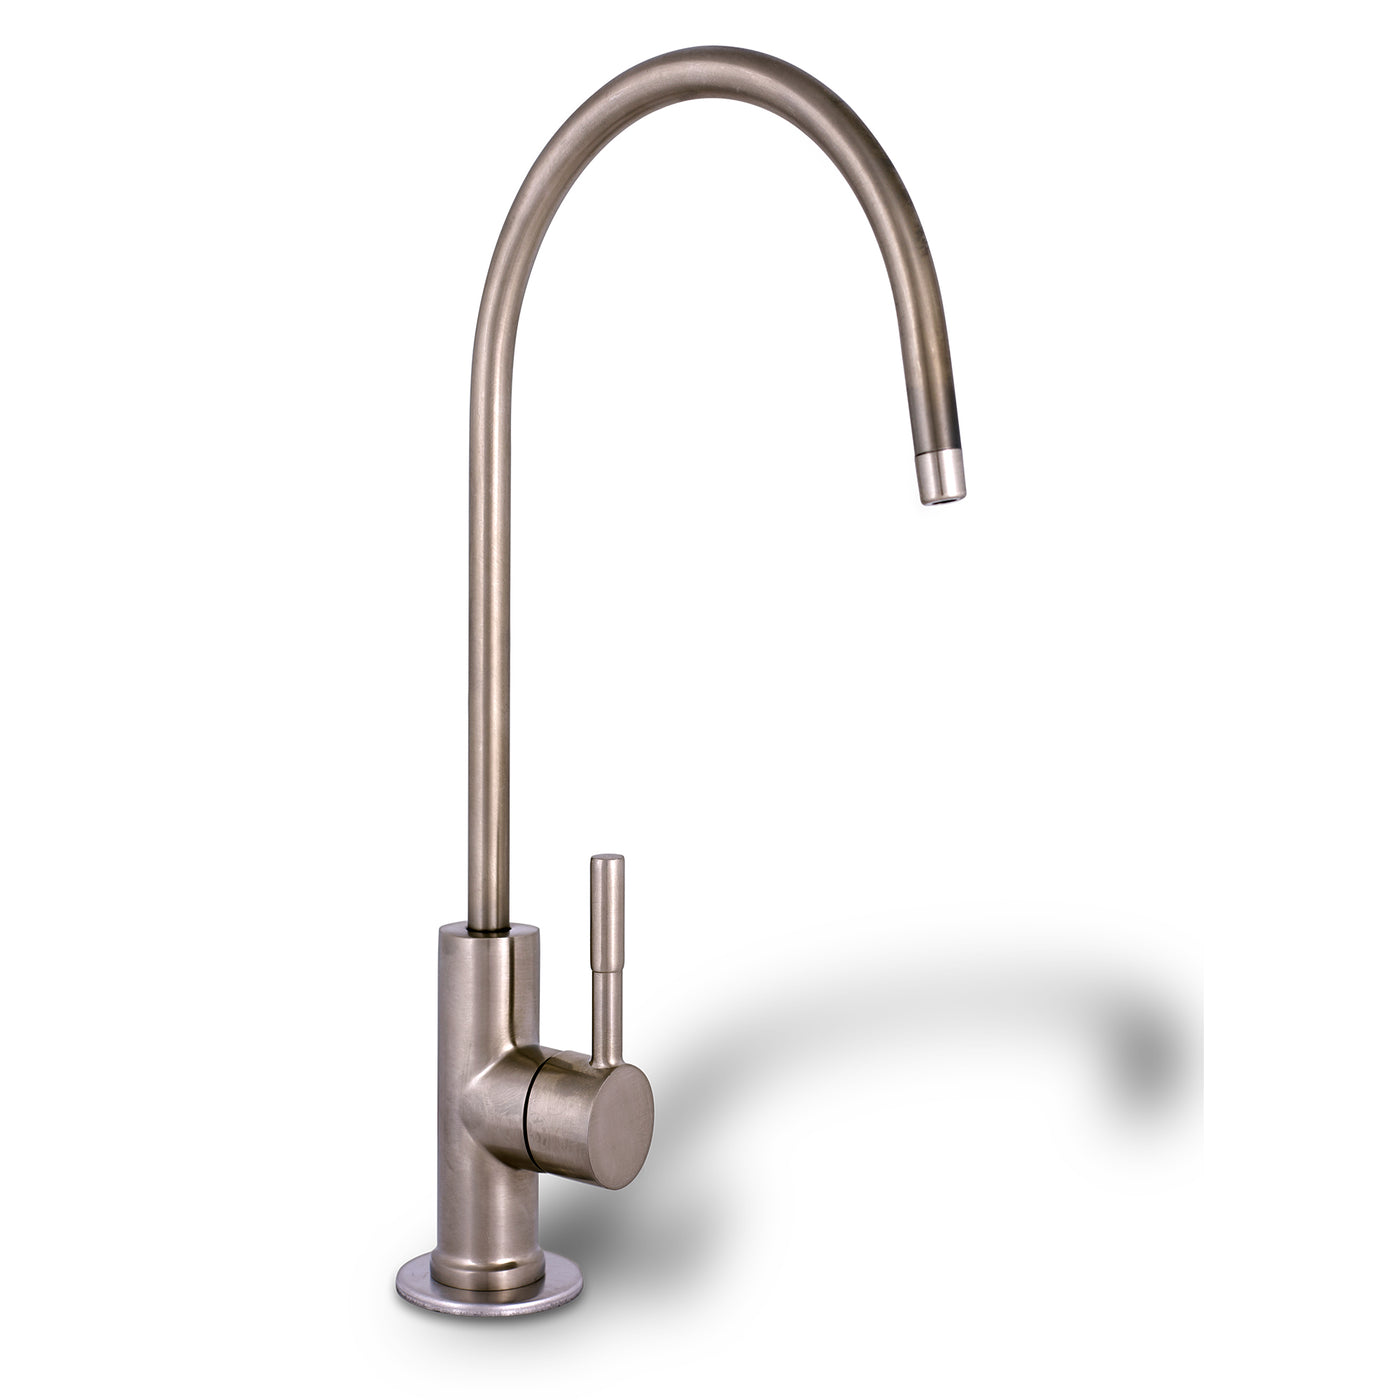 sink dp amazon kitchen steel hansgrohe beverage faucets faucet com filter optik touch s on water